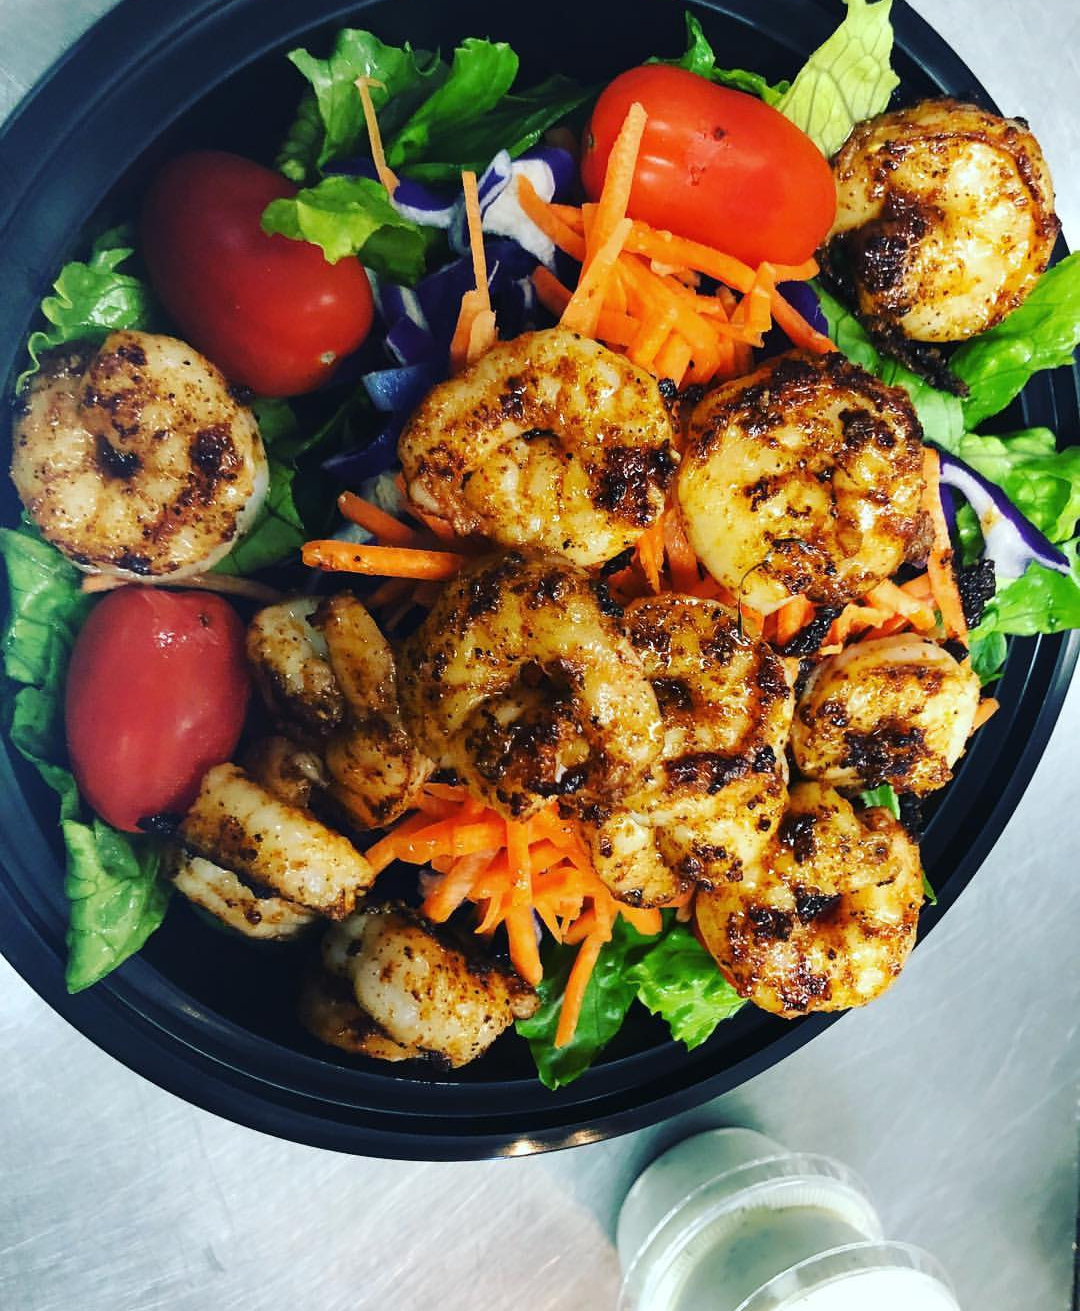 Grilled shrimp salad with lettuce cherry tomatoes, carrots and onions in a bowl